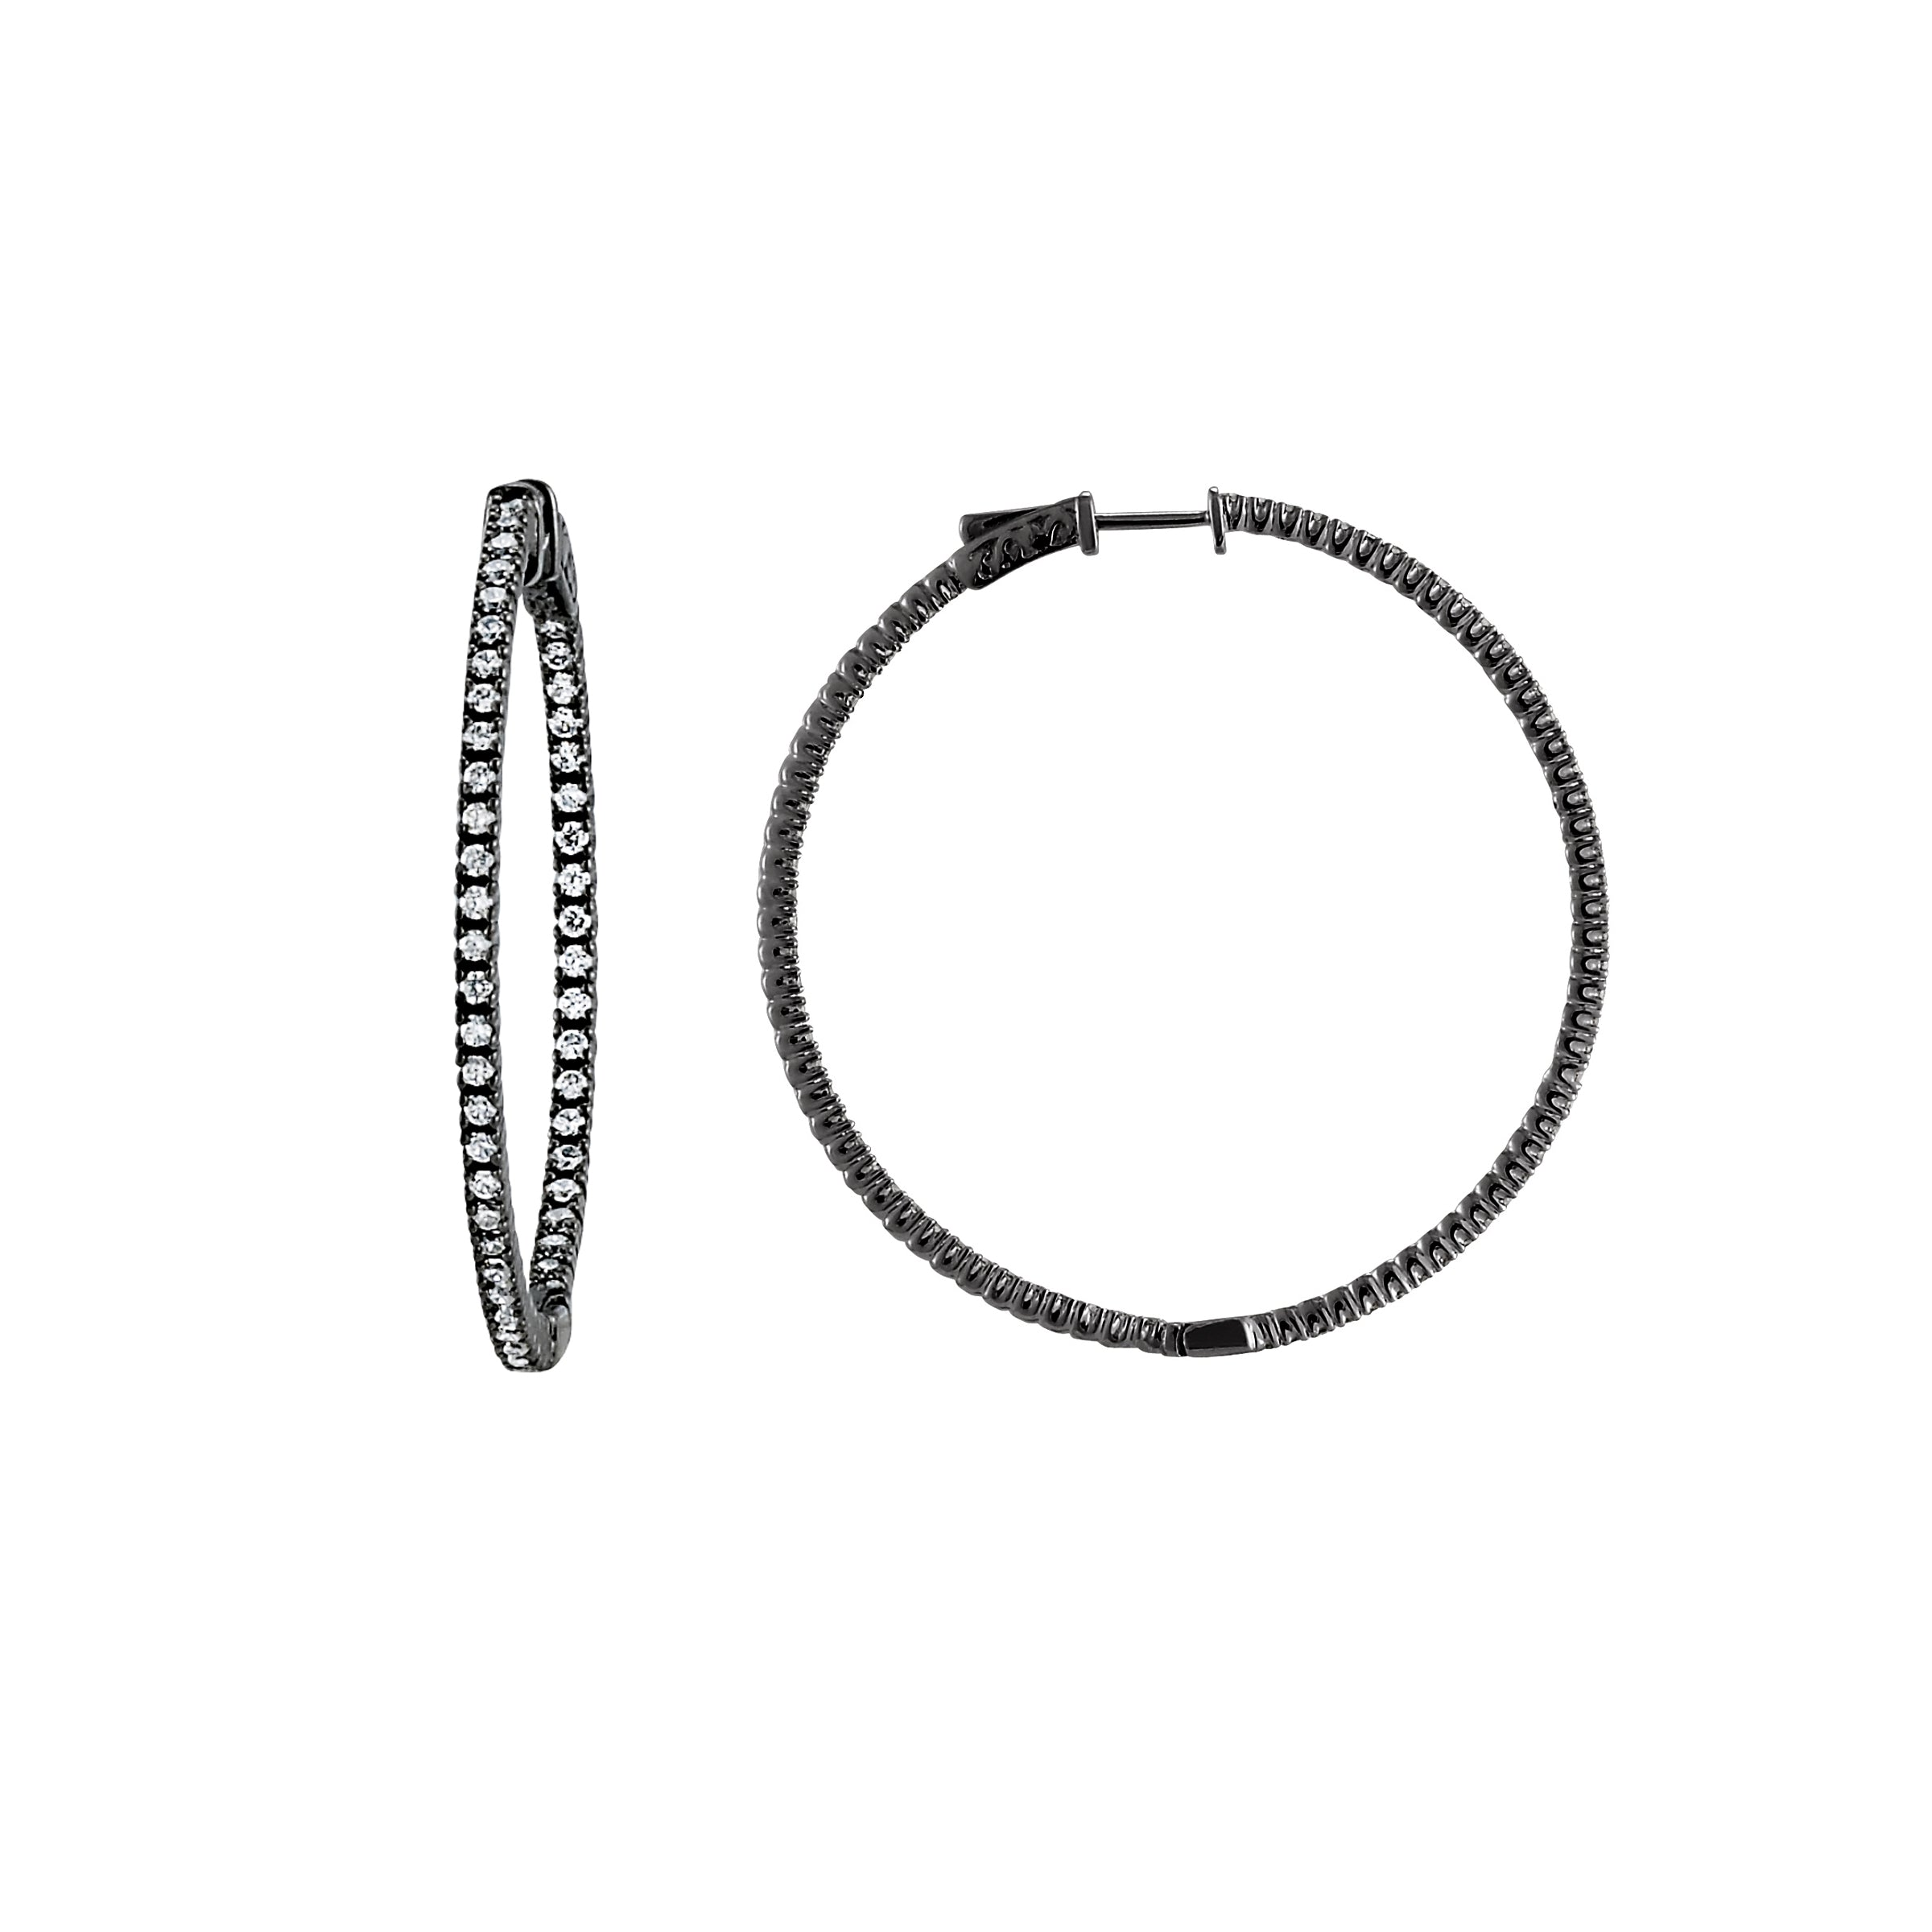 CZ Single Row Inside Out Hoop Earrings, 2 Inches, Sterling Silver with Black Rhodium